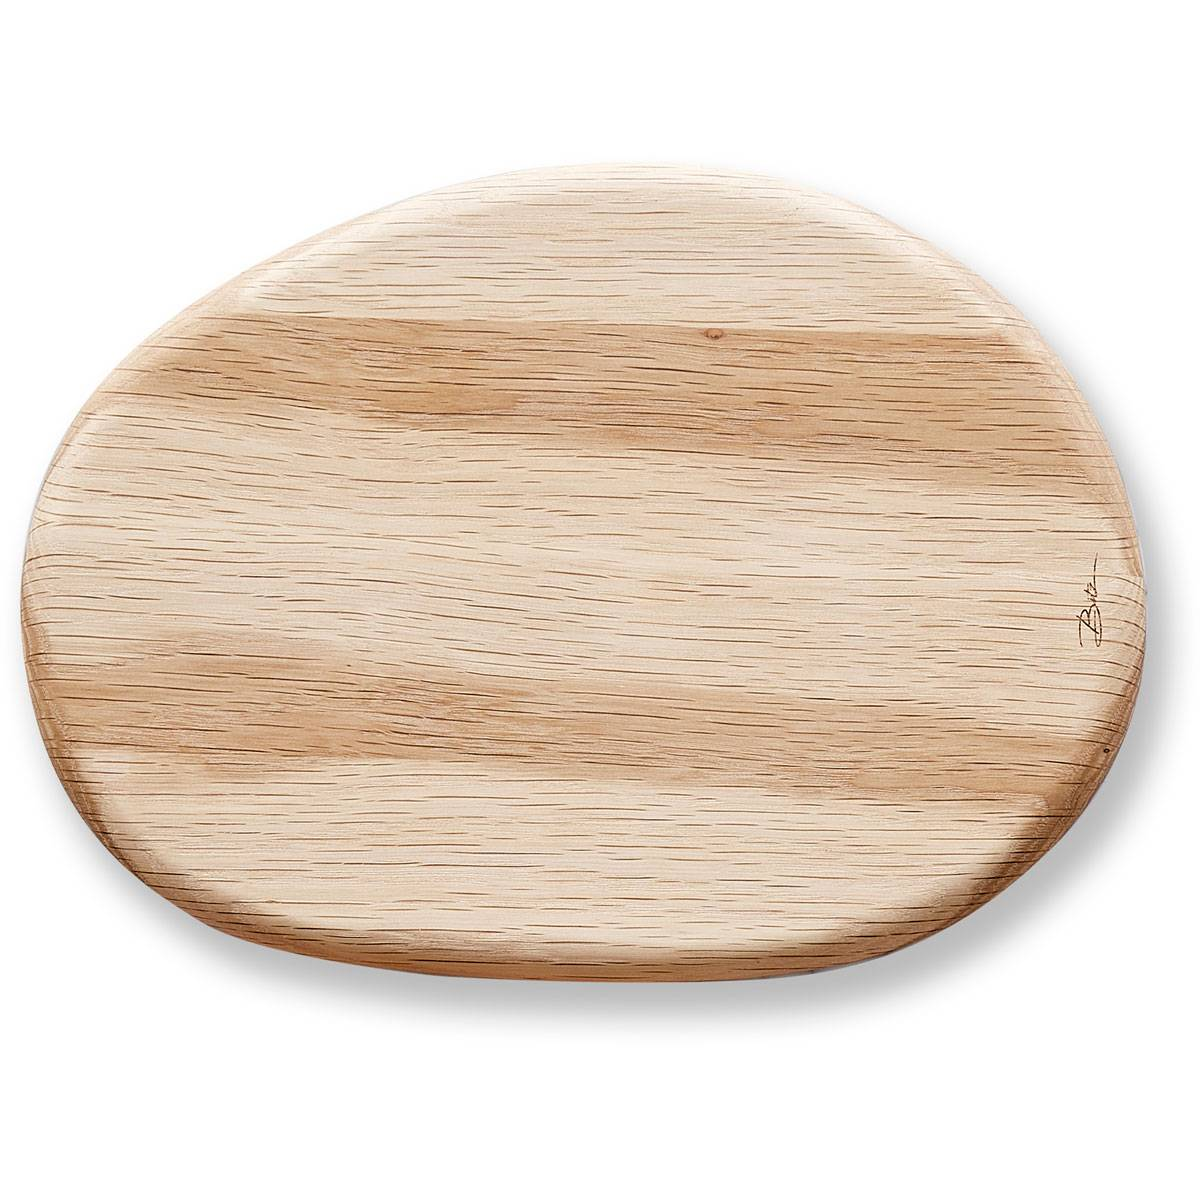 Bitz Cutting Board 35,5x26 cm, Oak